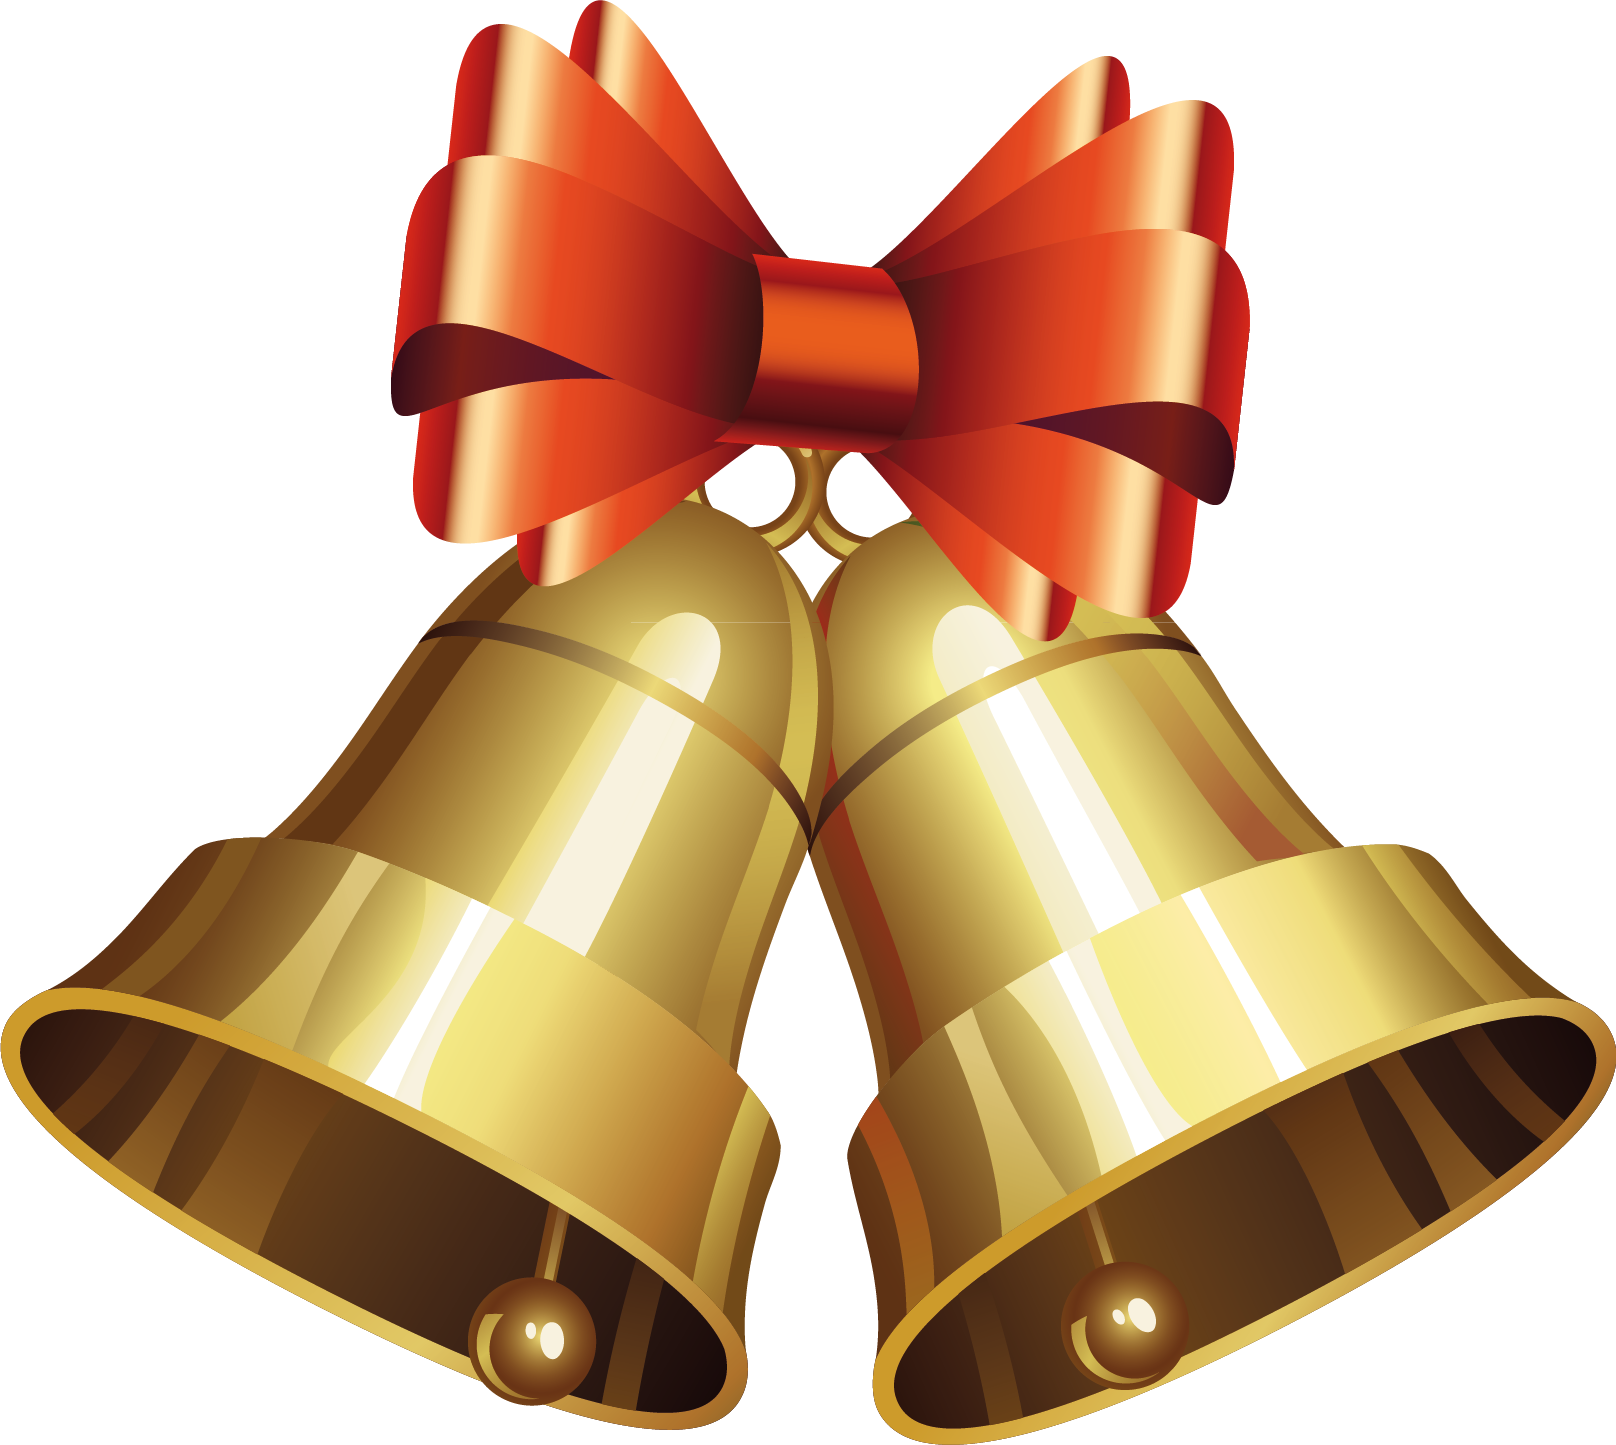 Golden Christmas Bells with Bow PNG Image